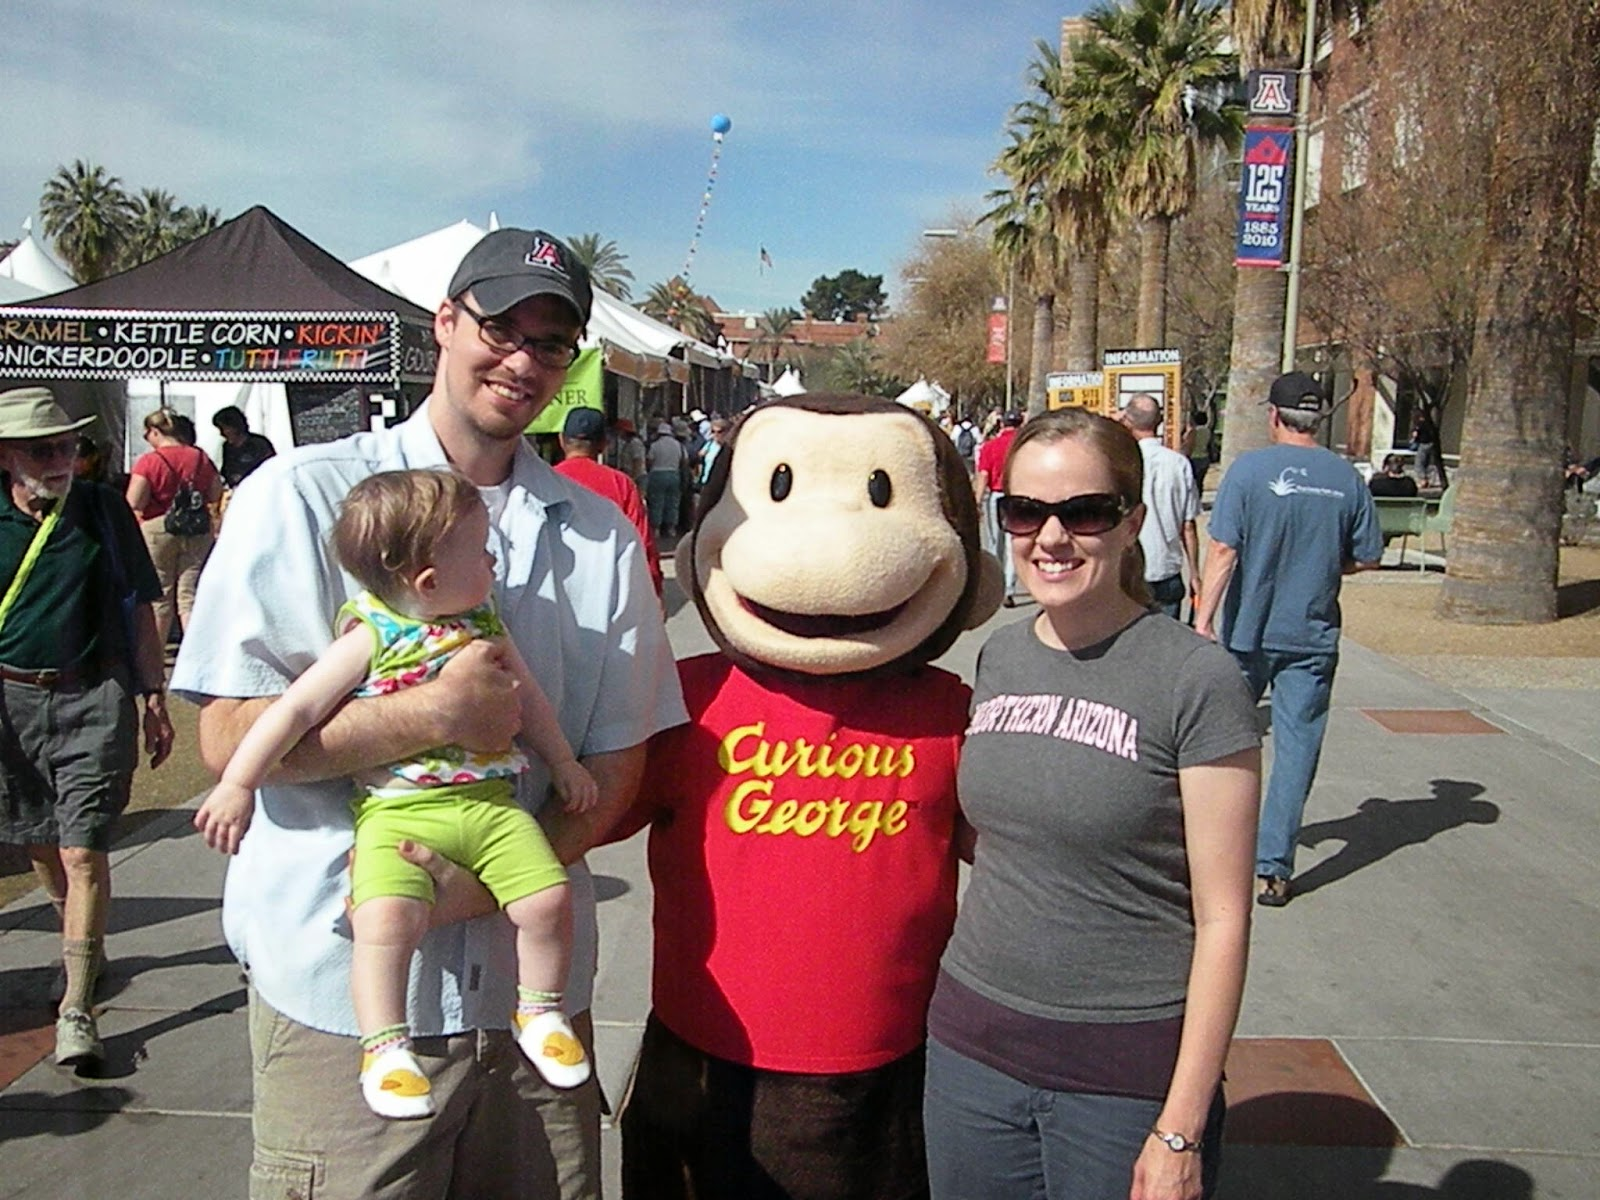 Tucson Festival of Books: Meeting Curious George